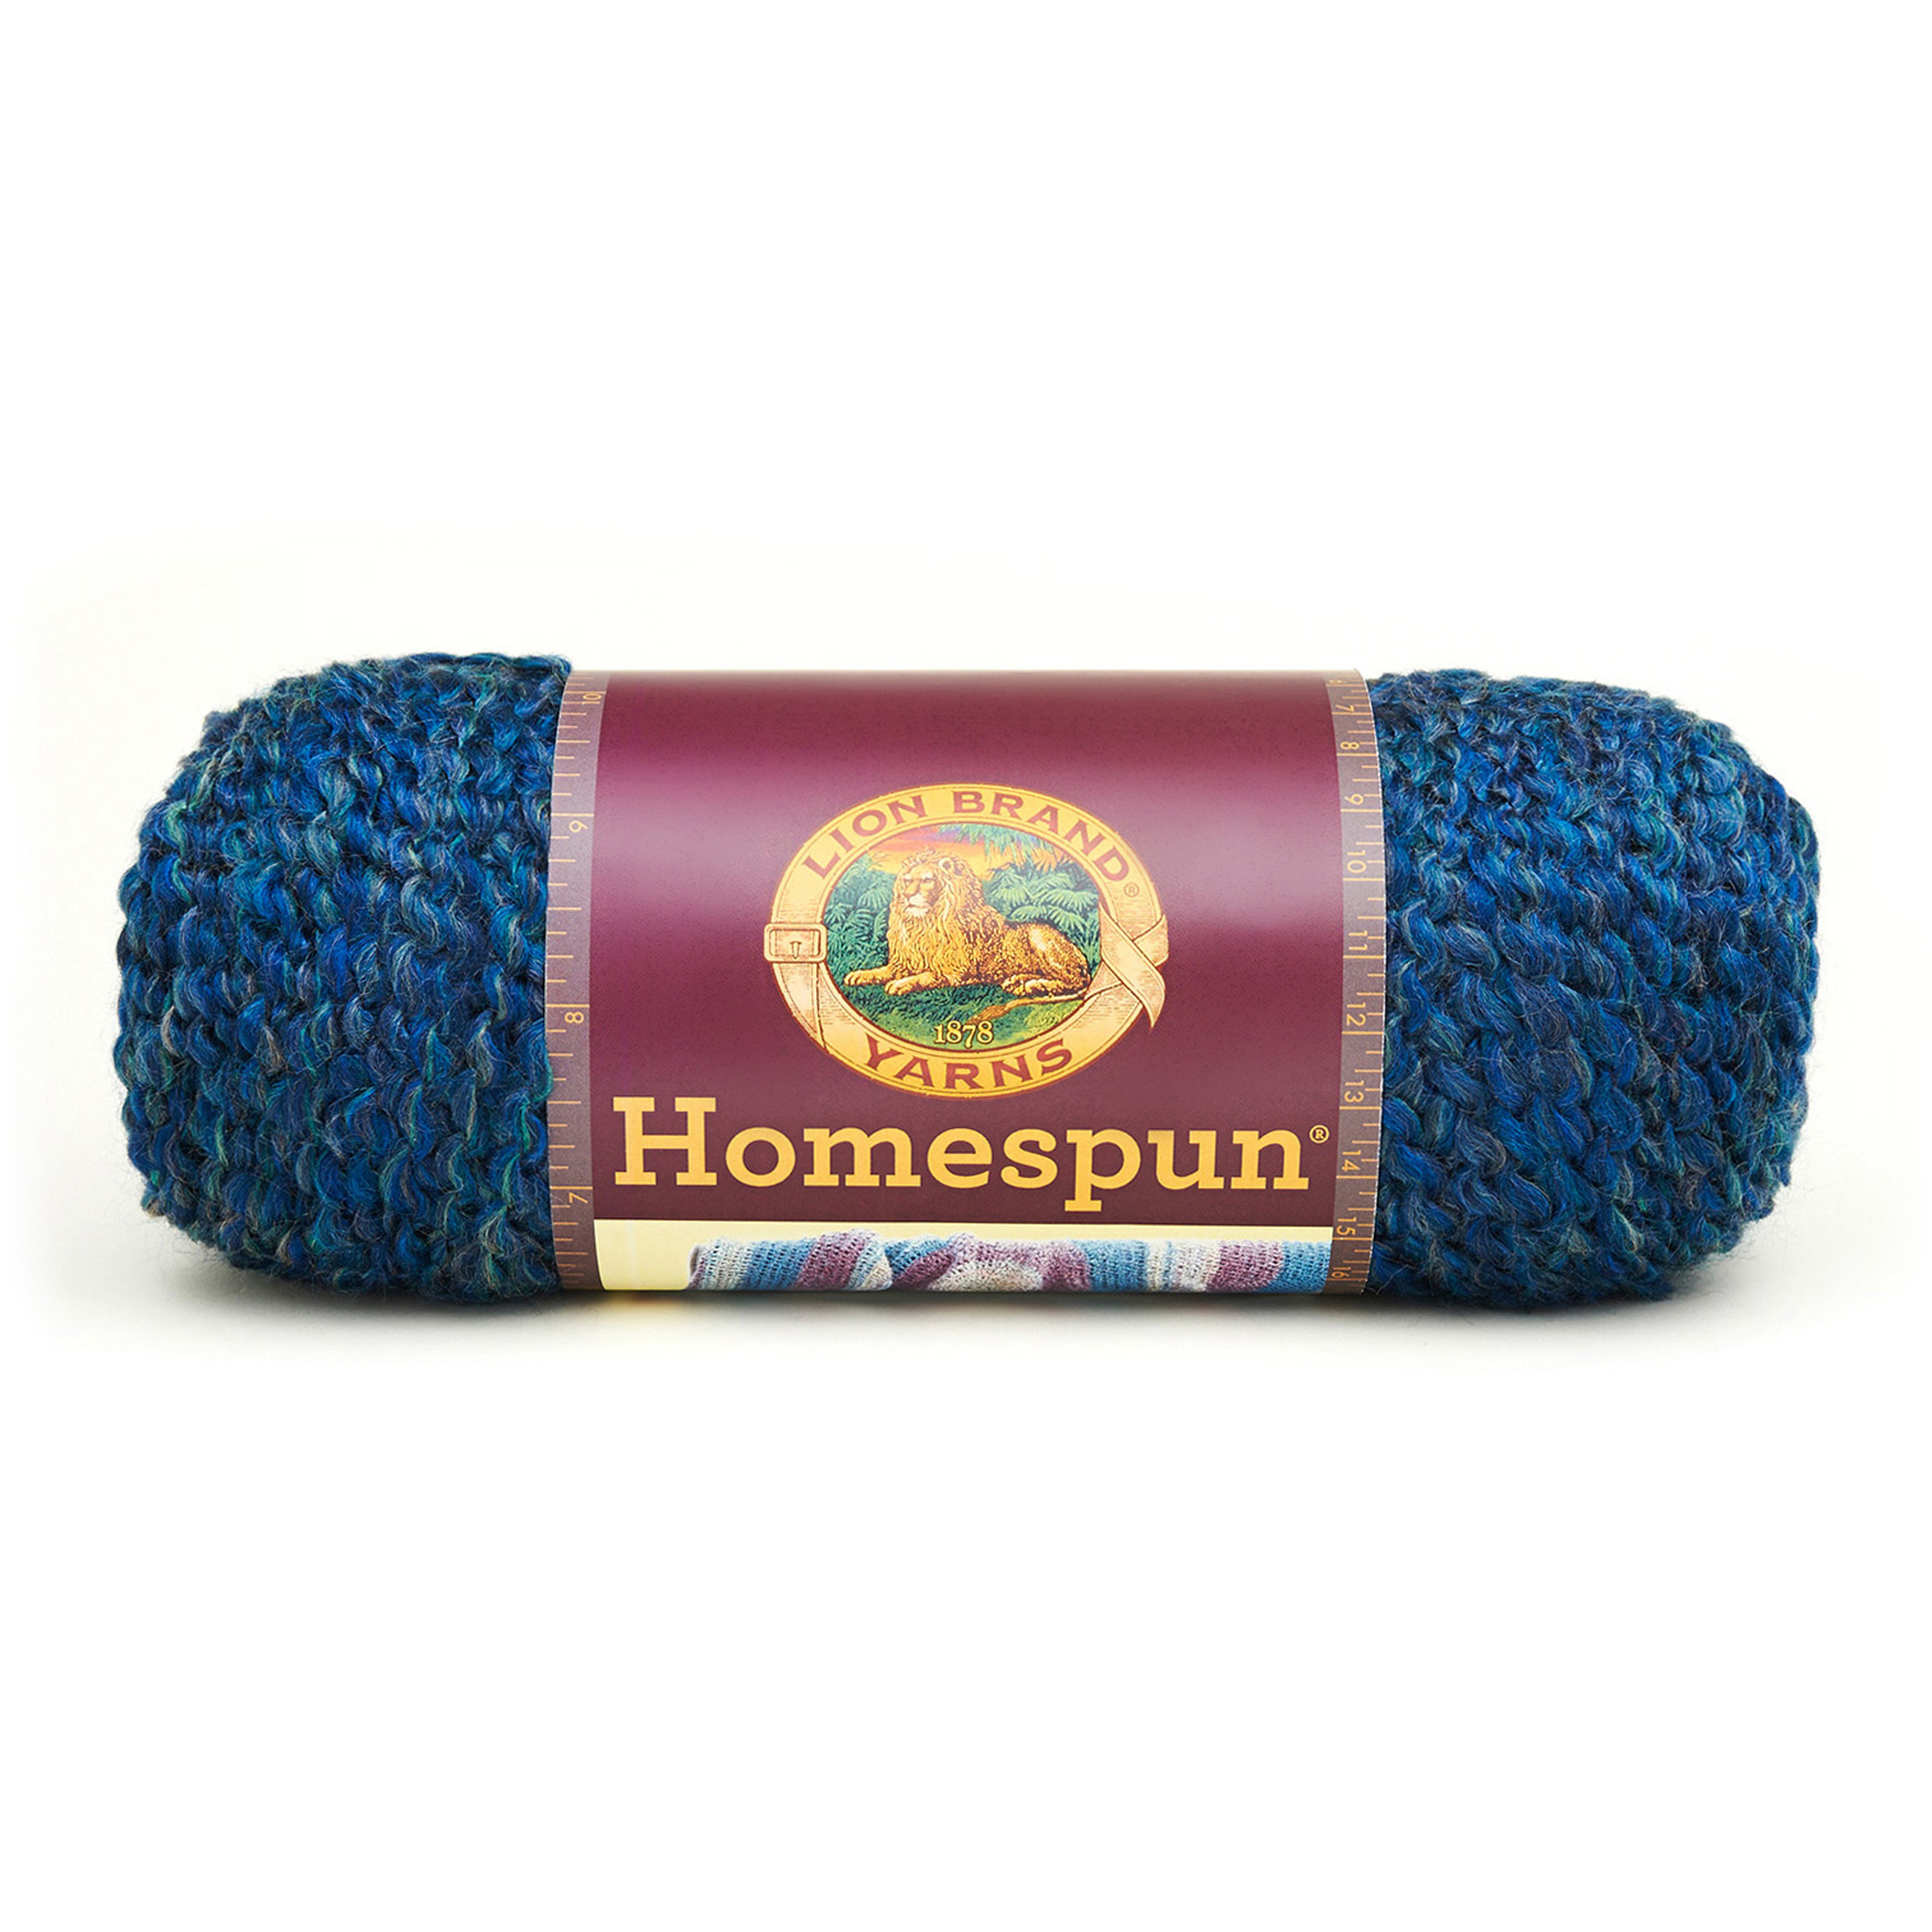 Lion Brand Homespun Yarn (302) Colonial